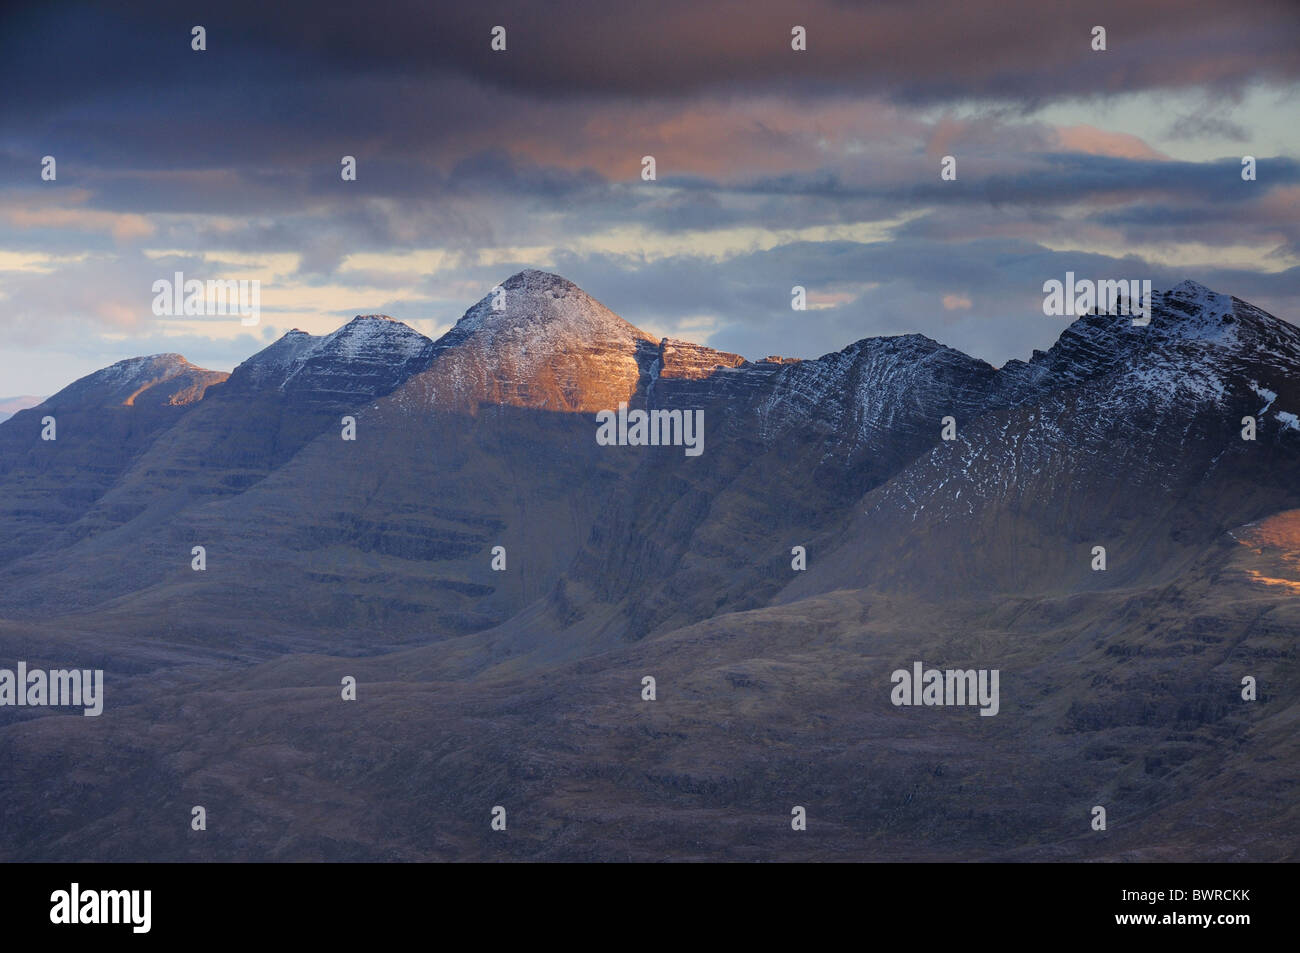 Dramatic late evening sunlight on Liathach, Torridon, Wester Ross, Scottish Highlands - Stock Image